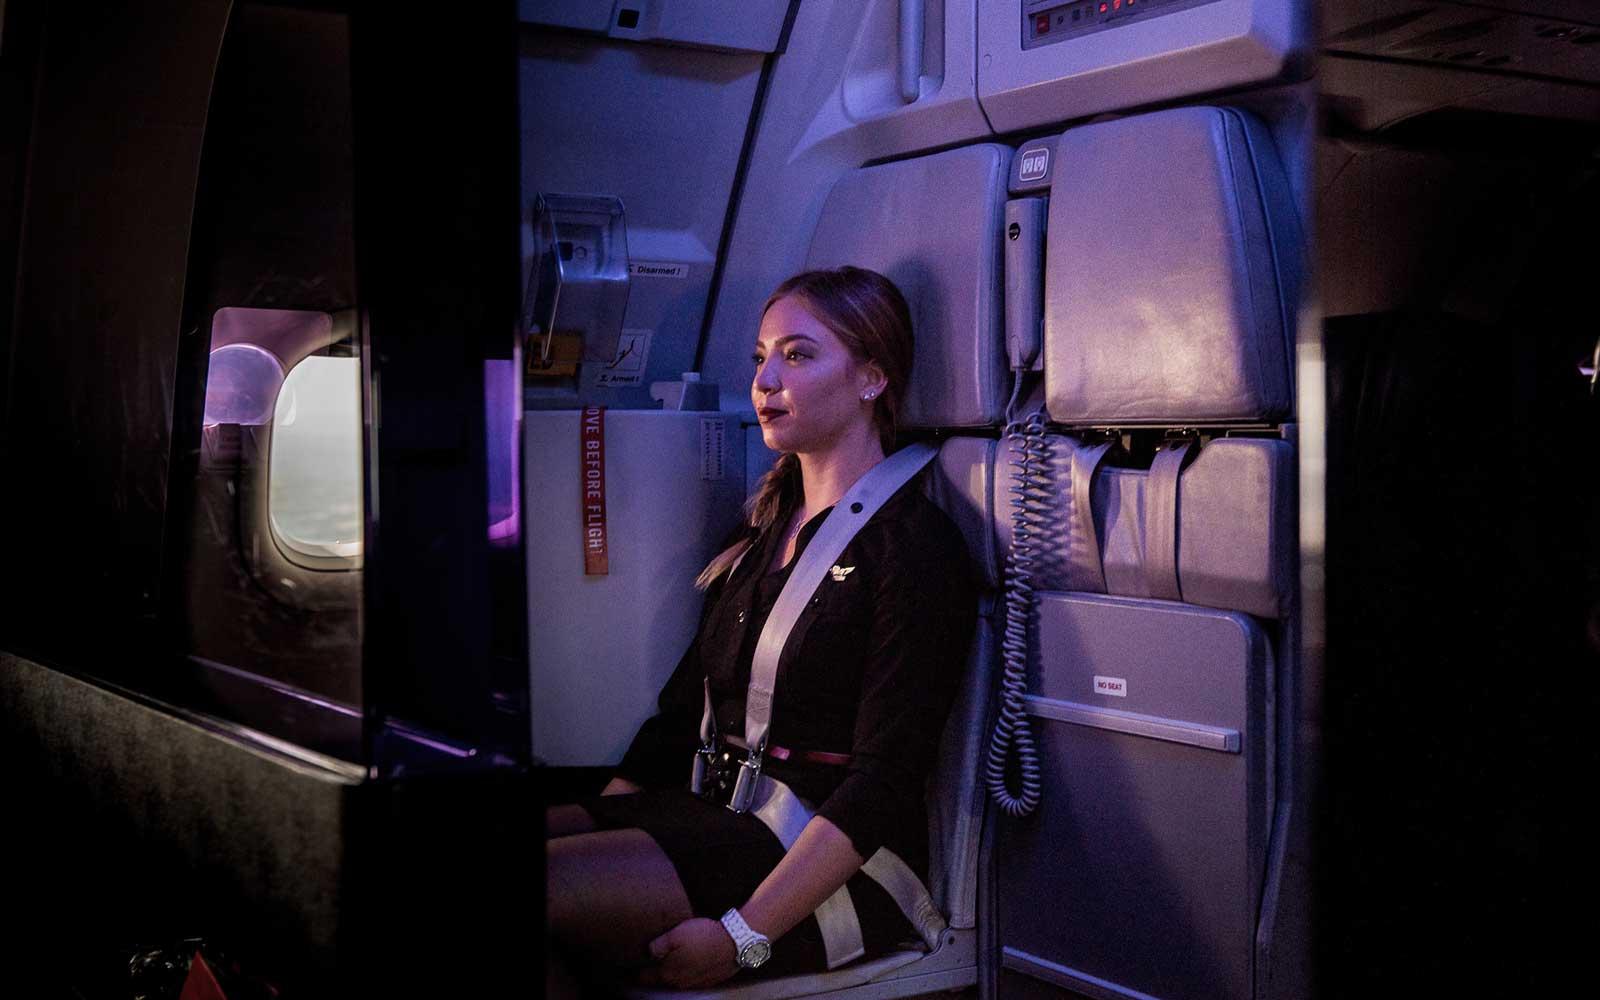 Virgin America Flight Attendant S Photography Shows A Side